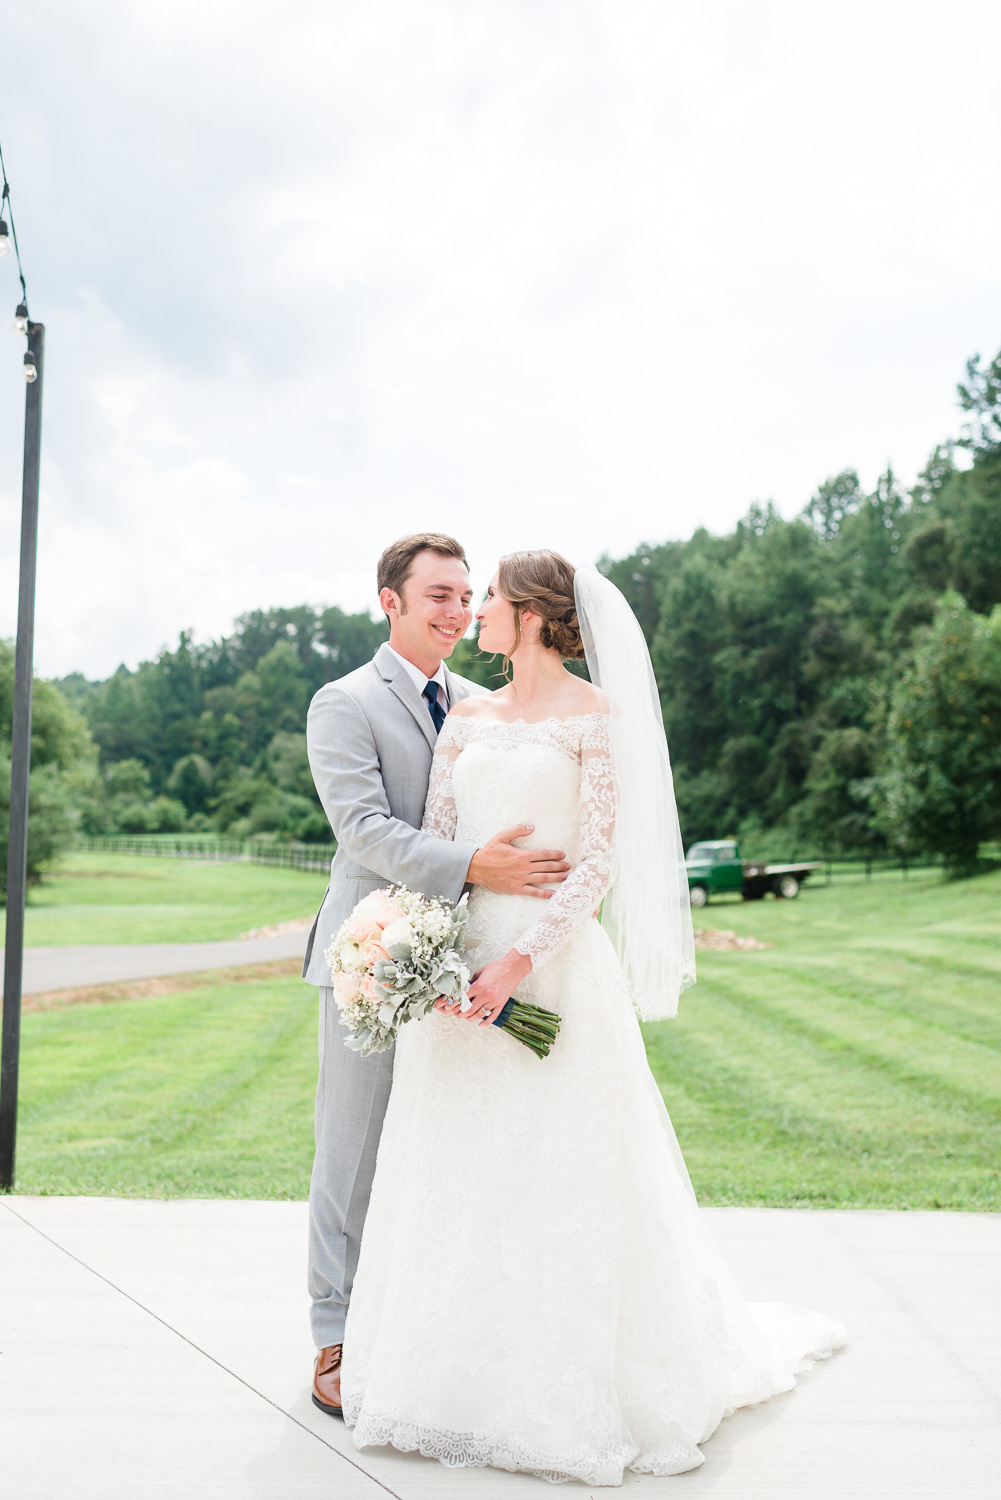 wedding day portraits of bride and groom on the front patio at four points Farm in Gatlinburg TN